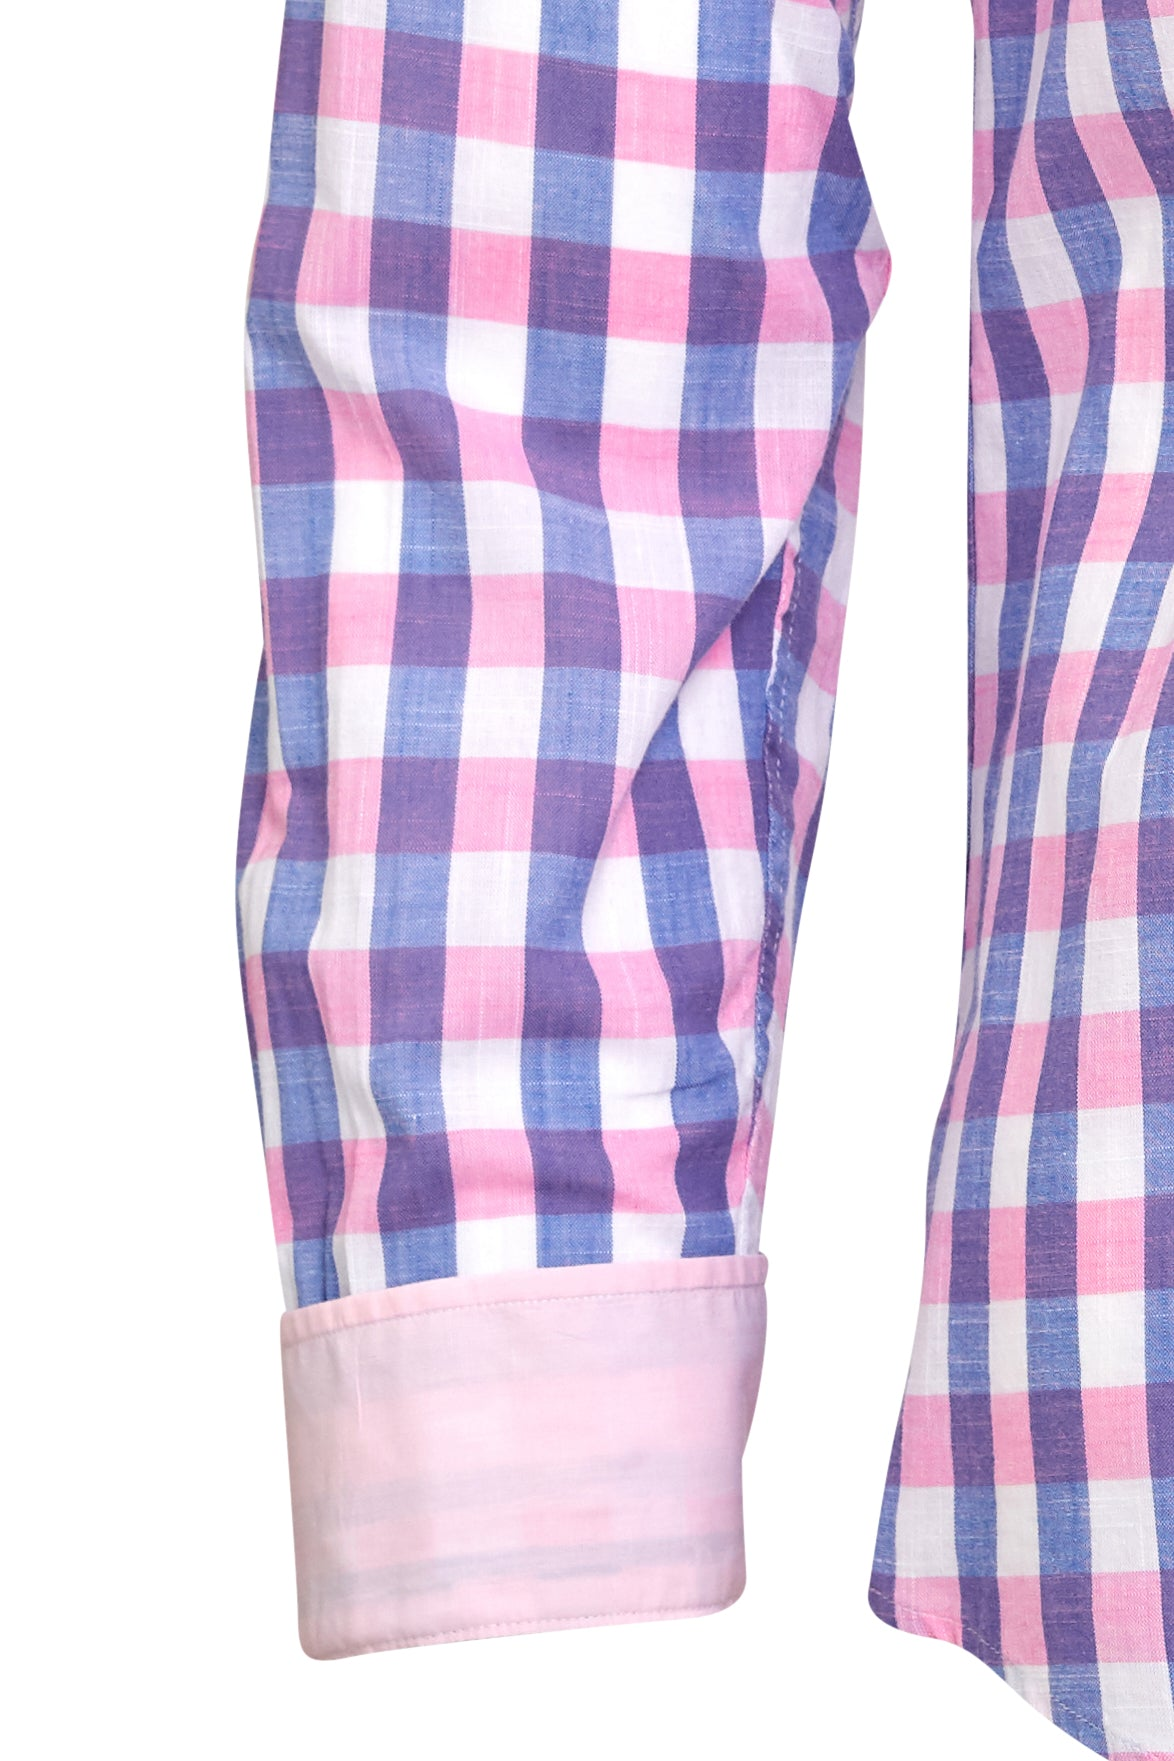 Pink n' Blue Big Check Dress Shirt